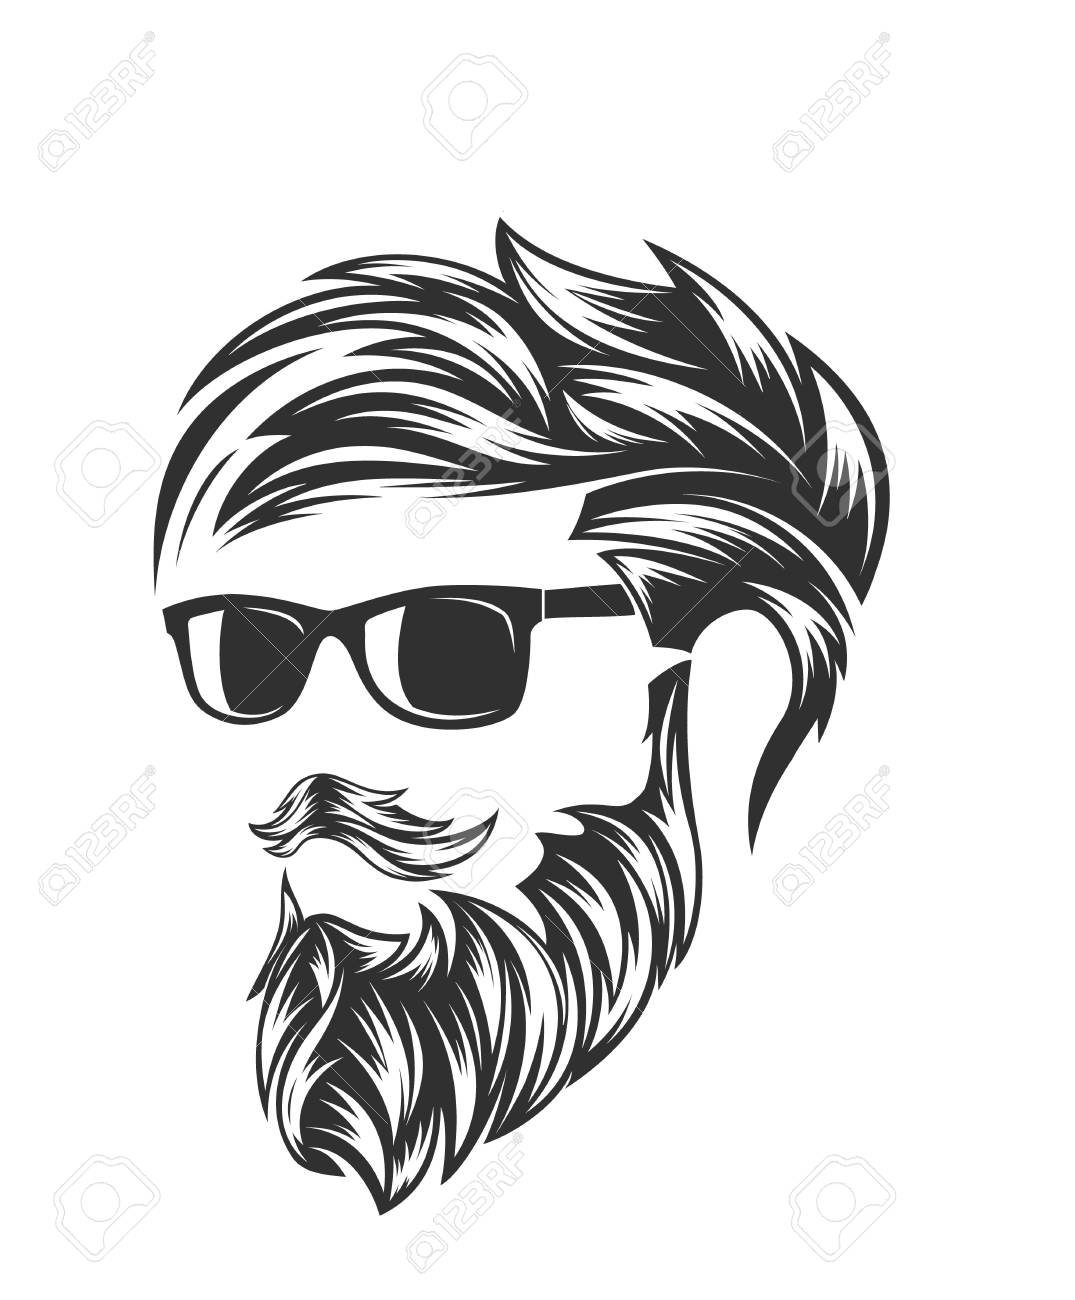 mens hairstyles and hirecut with beard mustache - 106902899